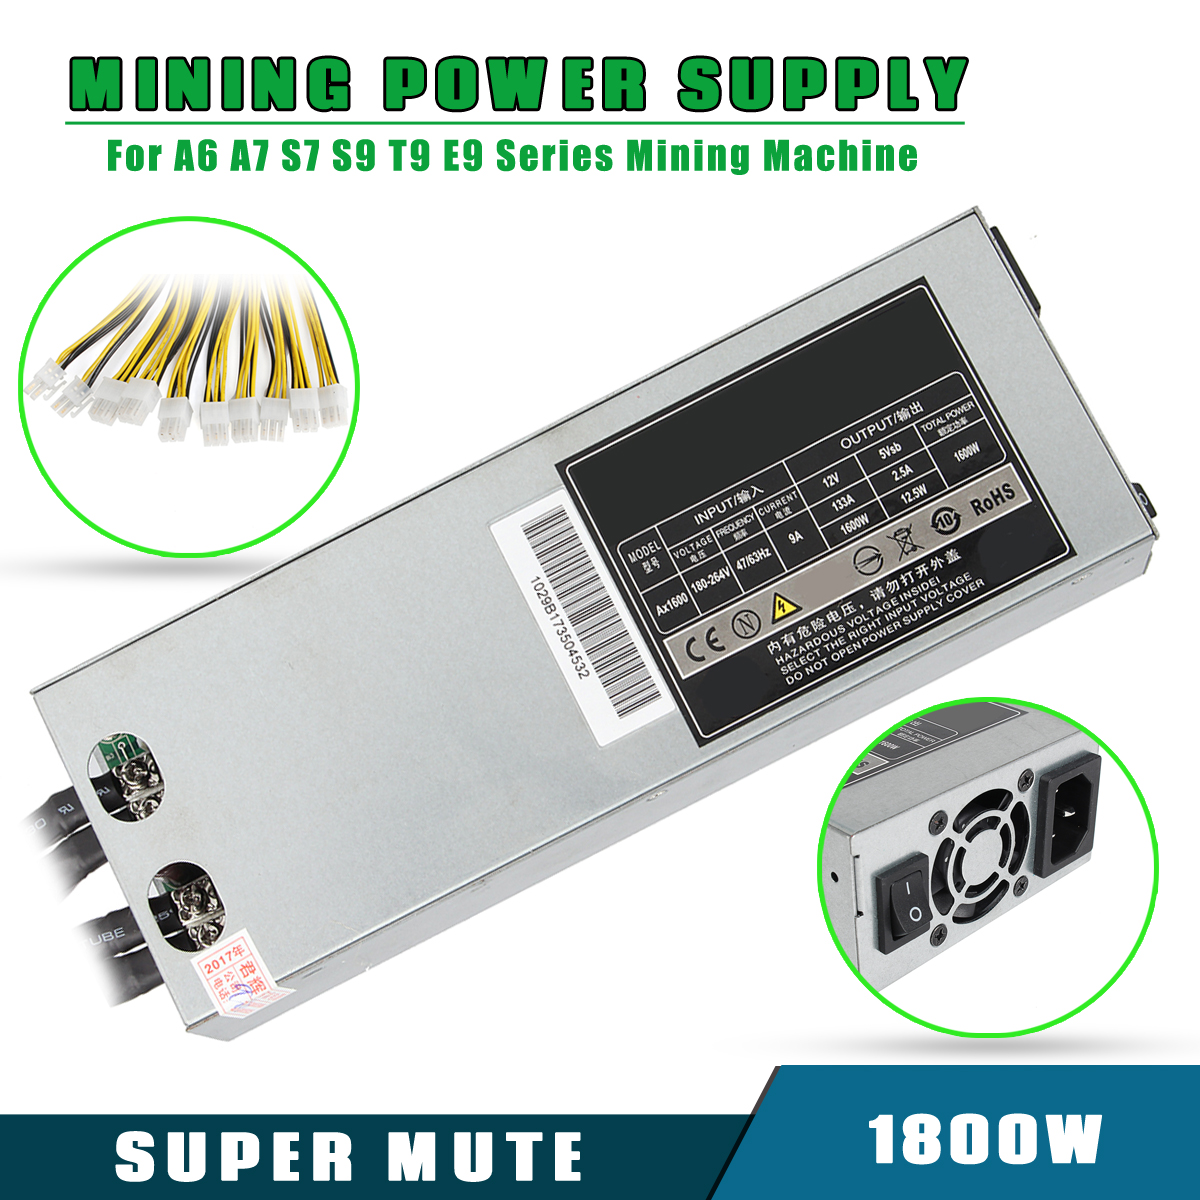 S SKYEE 1800W Power Supply For A6 A7 S7 S9 T9 E9 Series Mining Machine Computer Mining Power Supply With Cable For Miner Mining ветровое стекло для велокресел bobike windscreen one цвет оранжевый